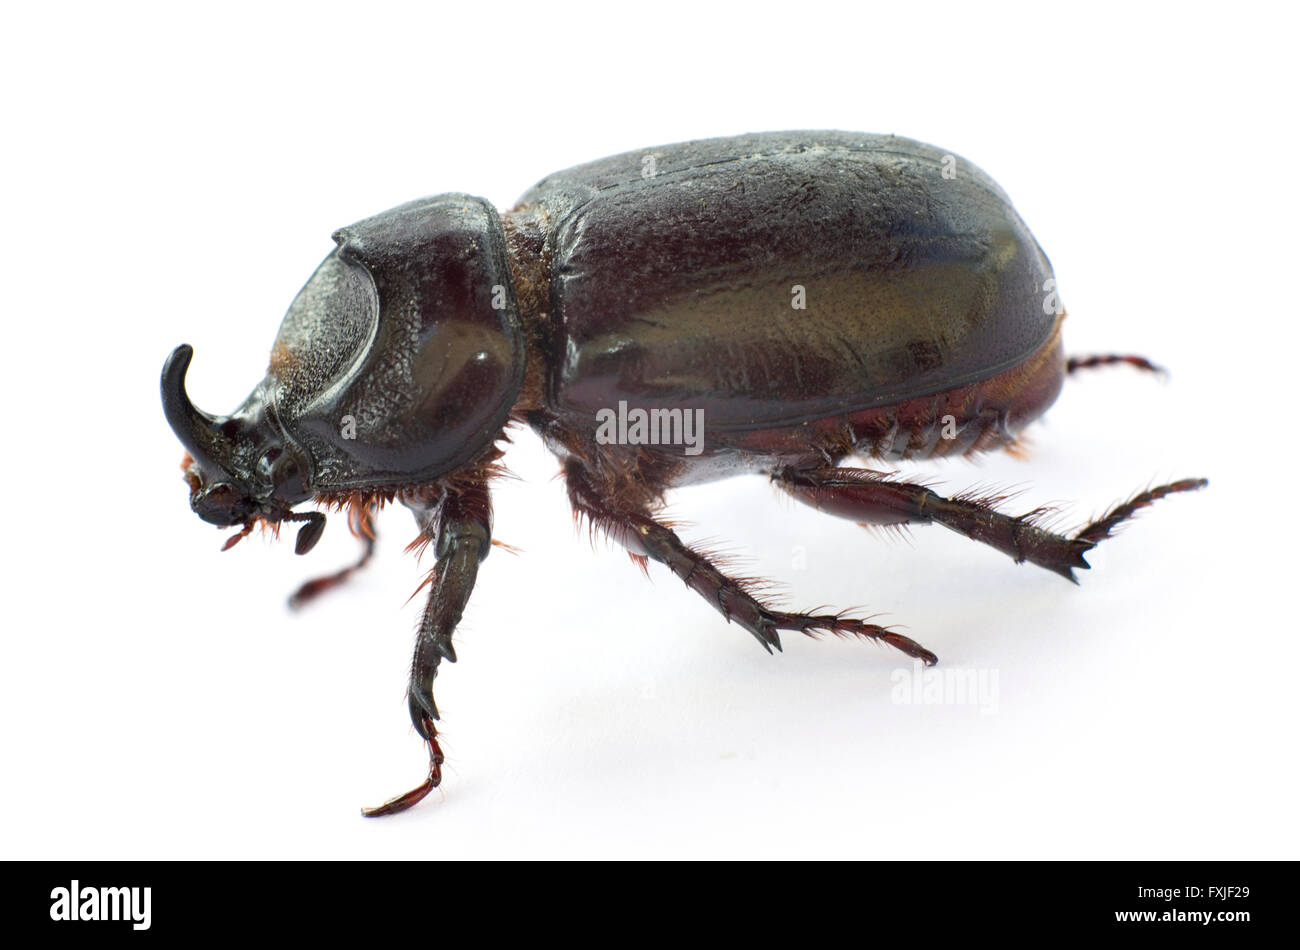 Asiatic Rhinoceros beetle (Coconut beetle) on white background. Stock Photo